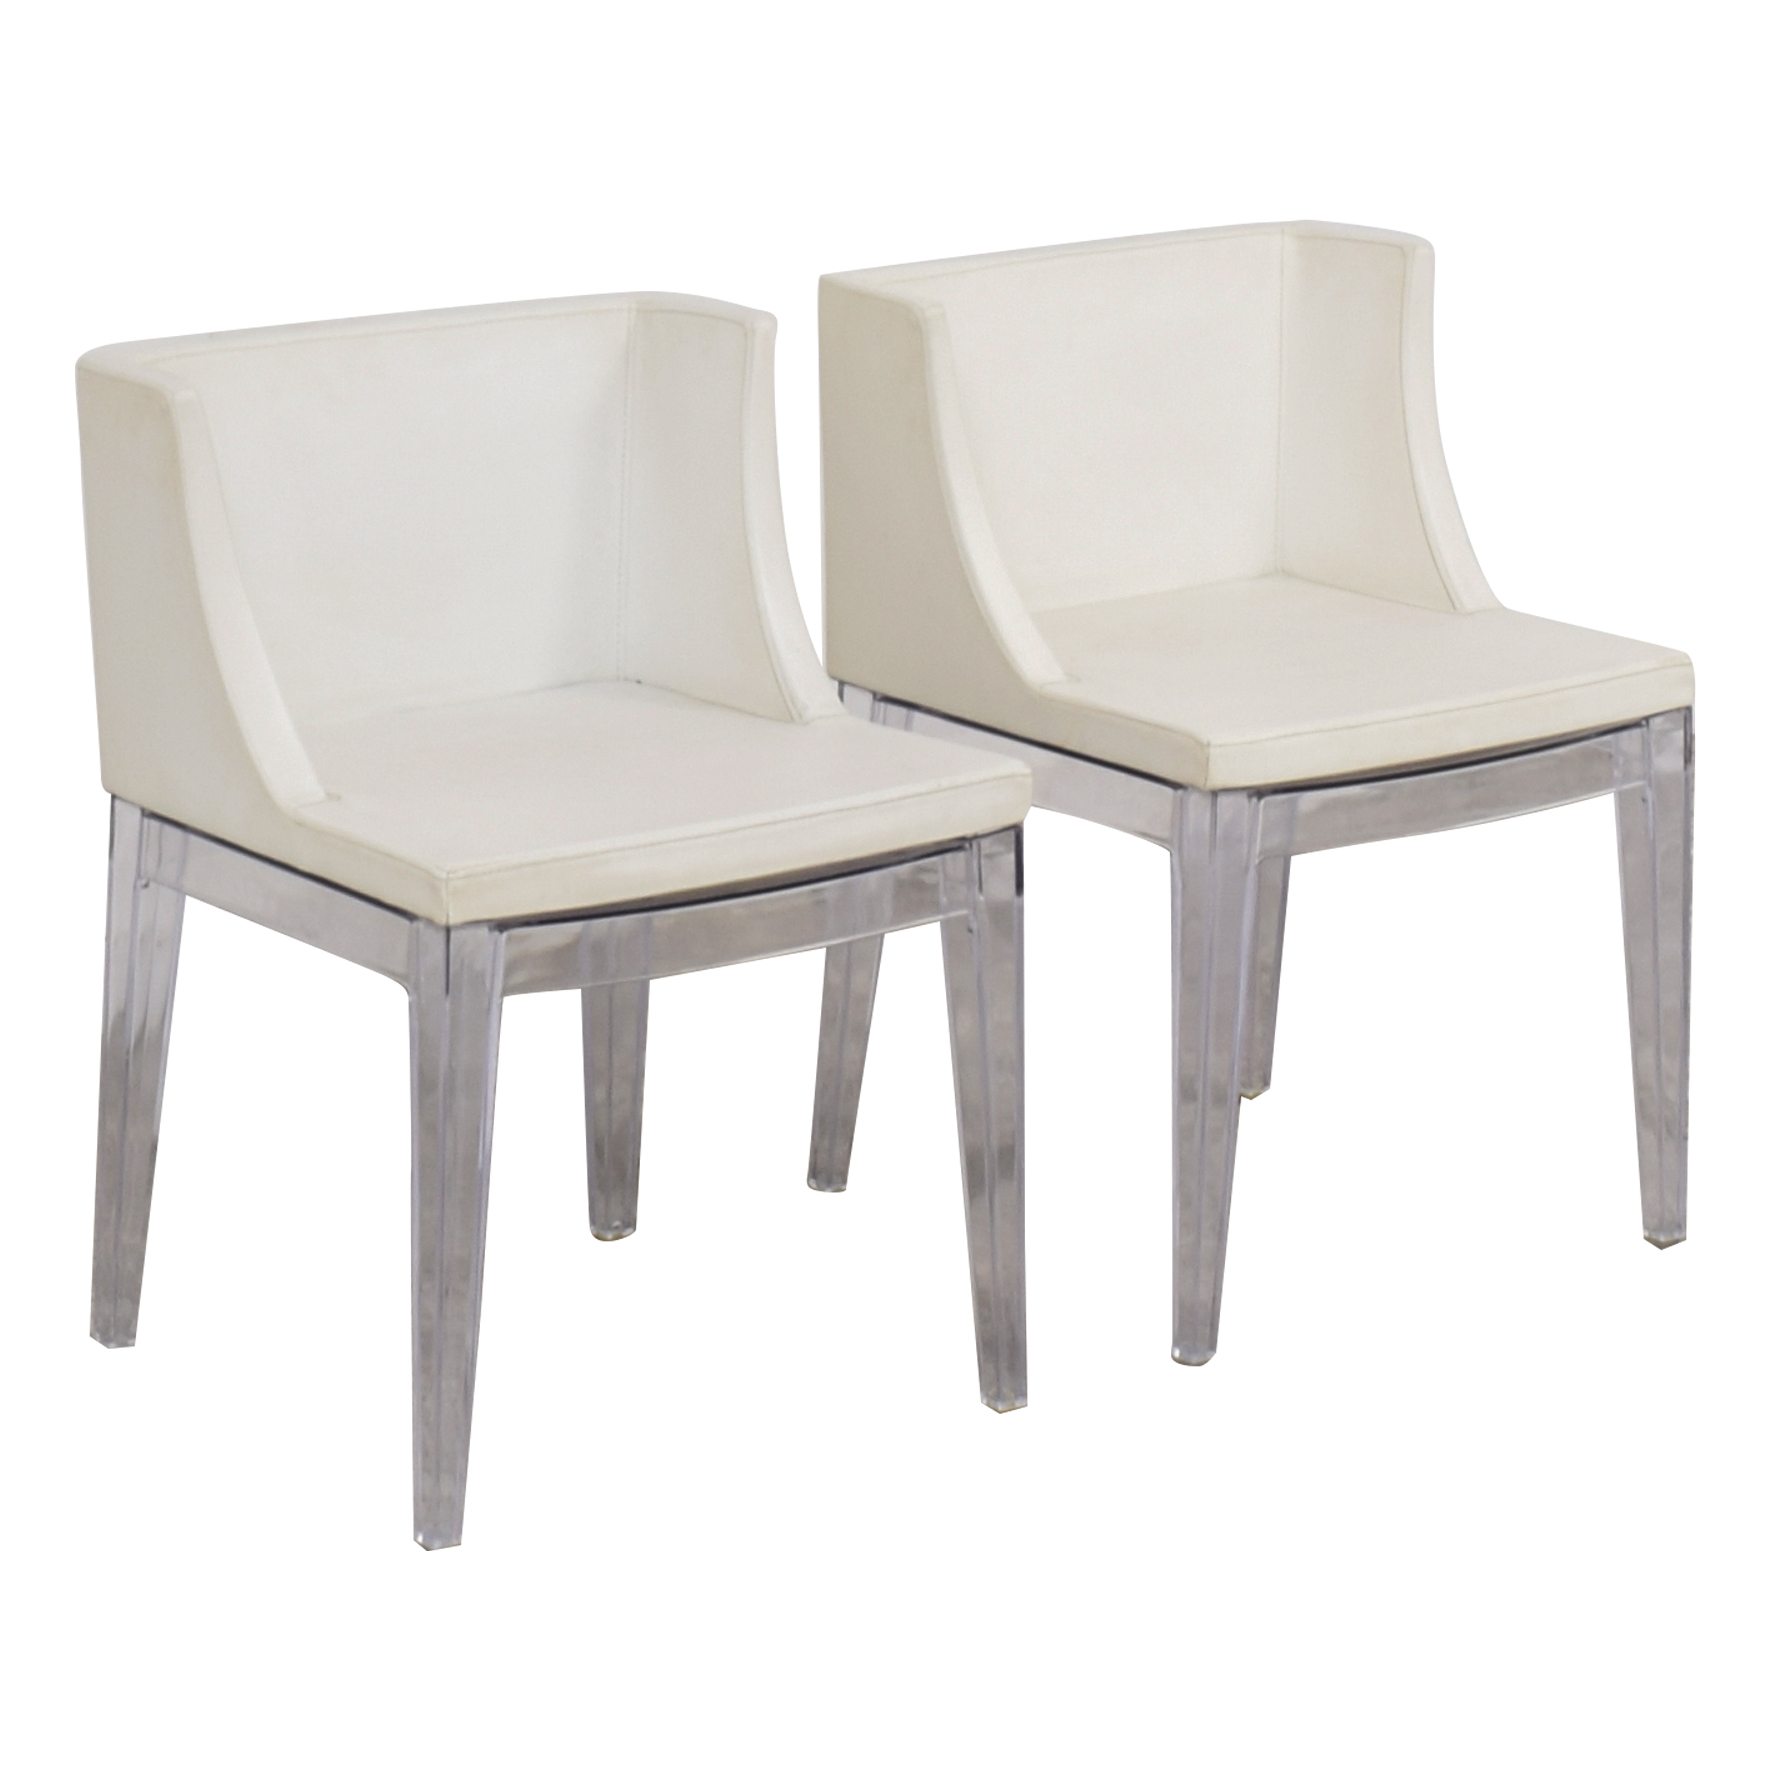 Mademoiselle-Style Chairs discount